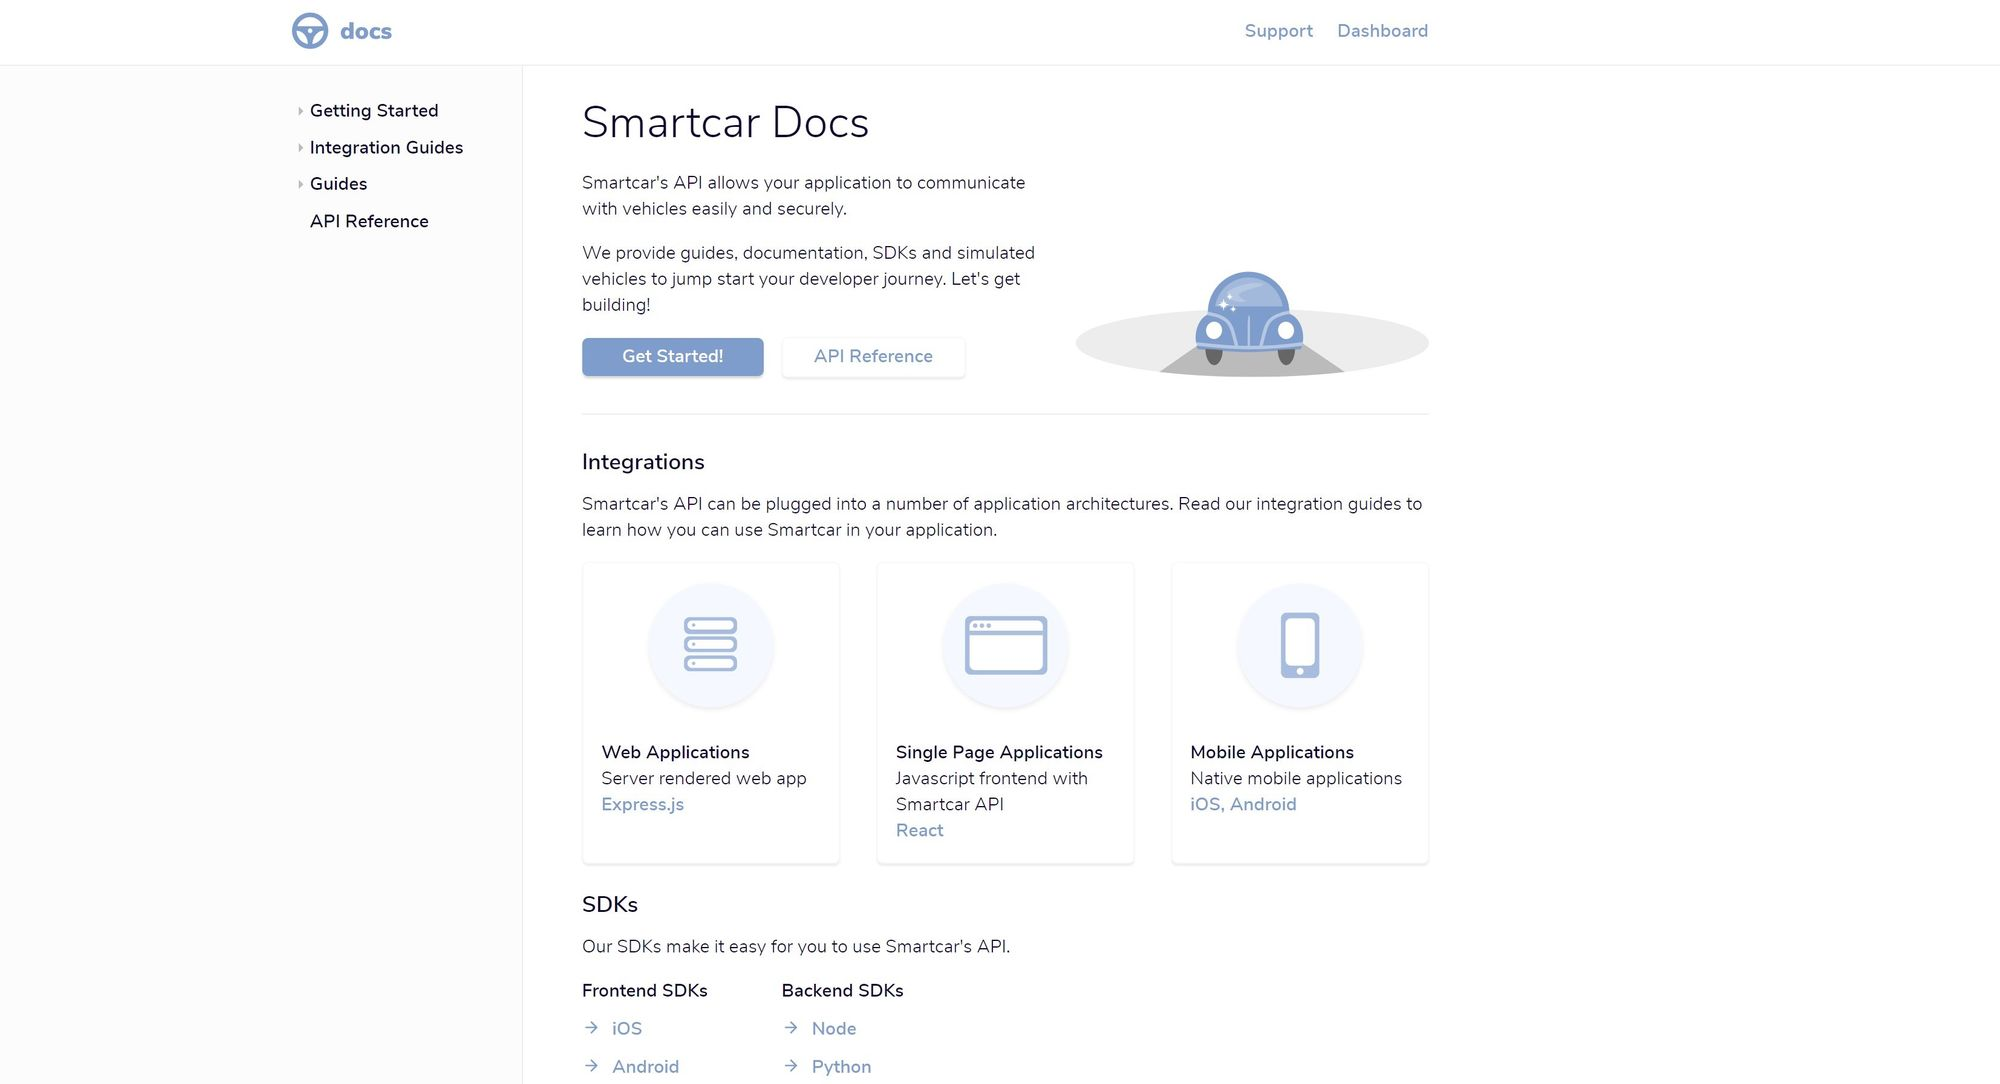 Announcing the new documentation center